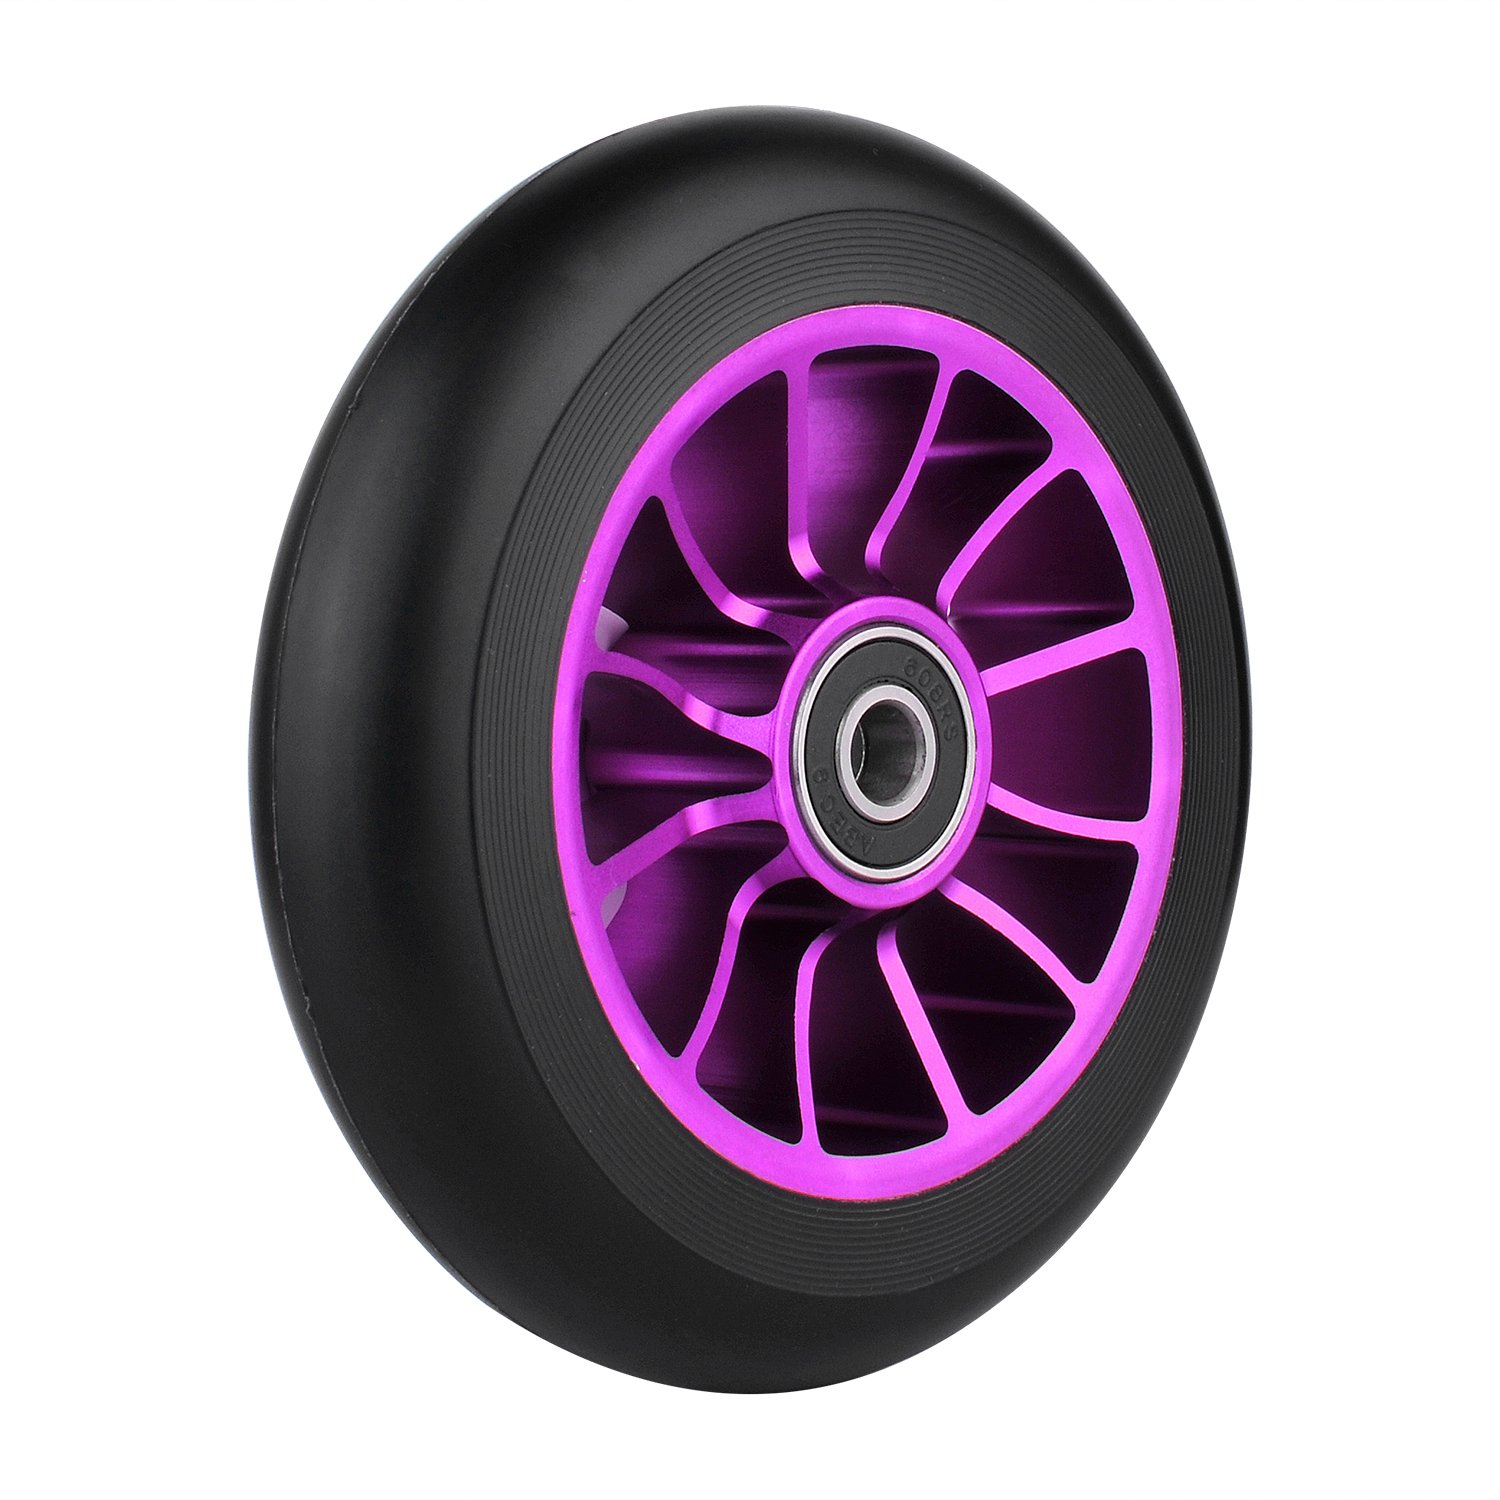 110mm Pro Scooter Wheel with Abec 9 Bearings Fit for MGP/Razor/Lucky Pro Scooters